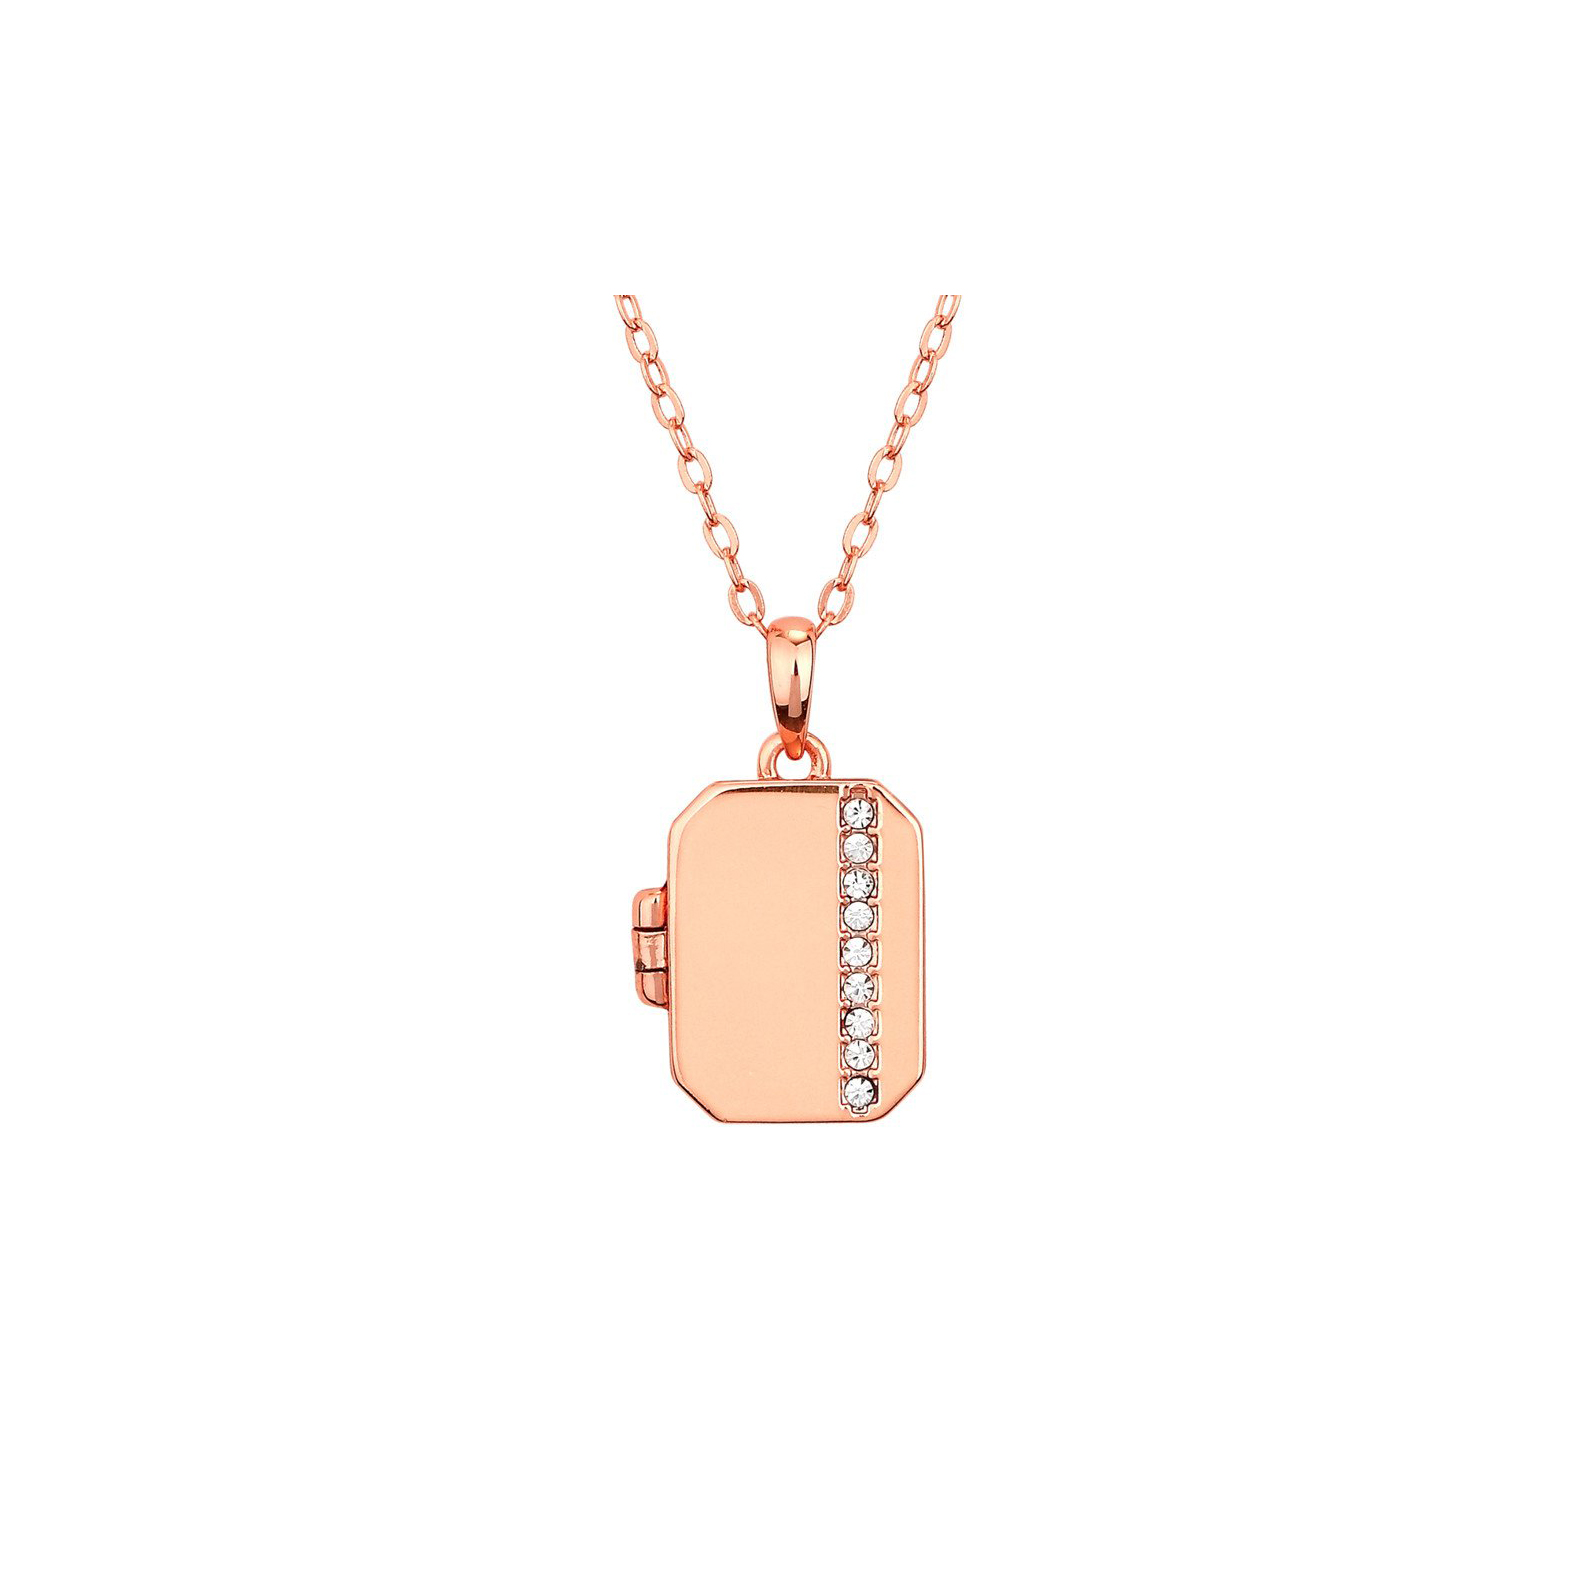 Personalized Jewelry For Moms You Won T Find In A Store